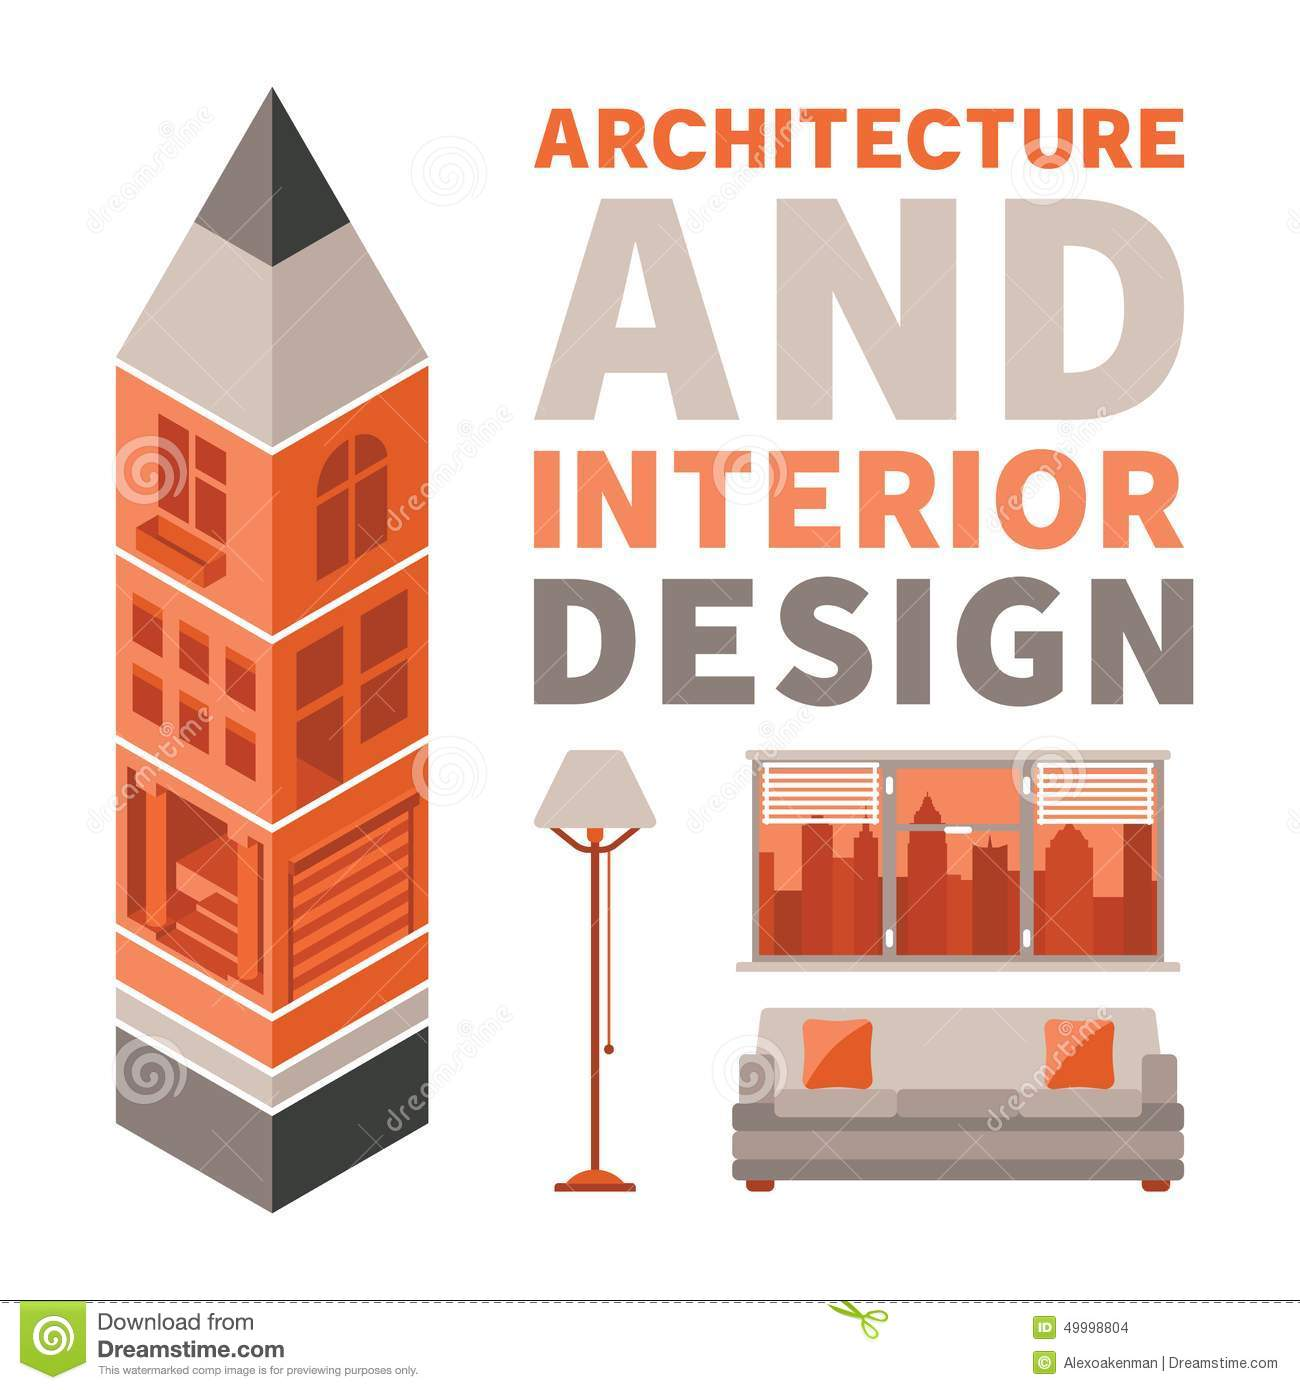 Architecture and interior design vector concept in flat for Architecture interior design